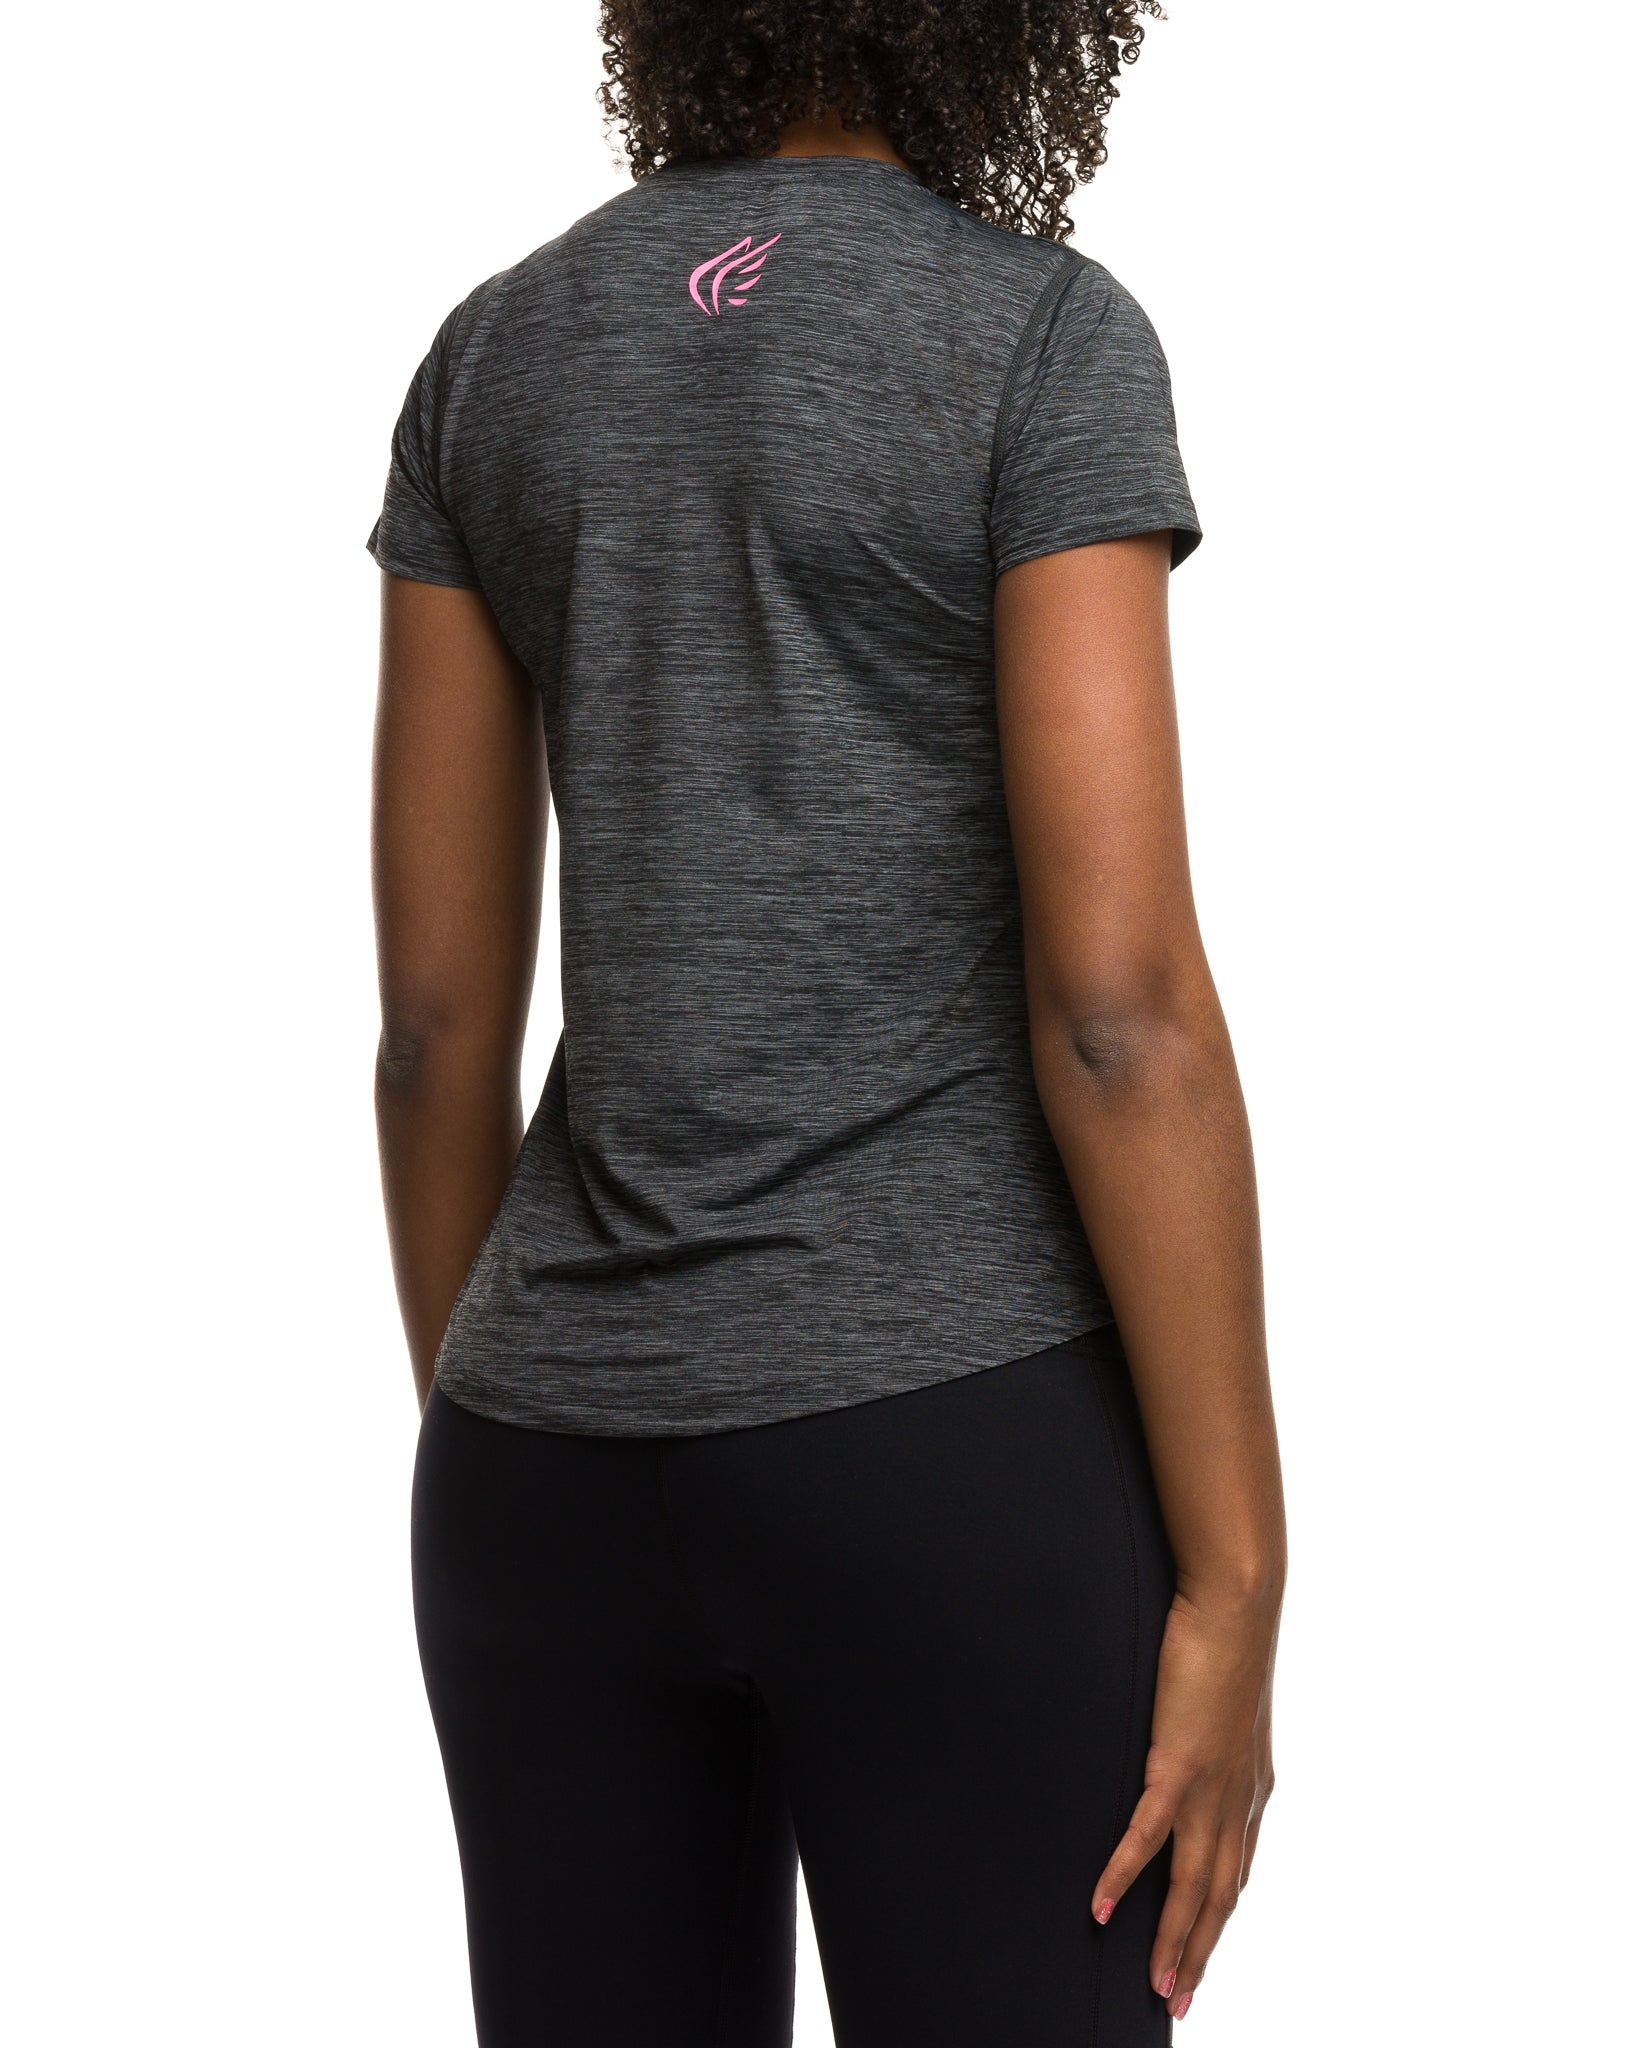 Women's Performance T-Shirt Buy Online, Charcoal Pink - Active Faith Sports